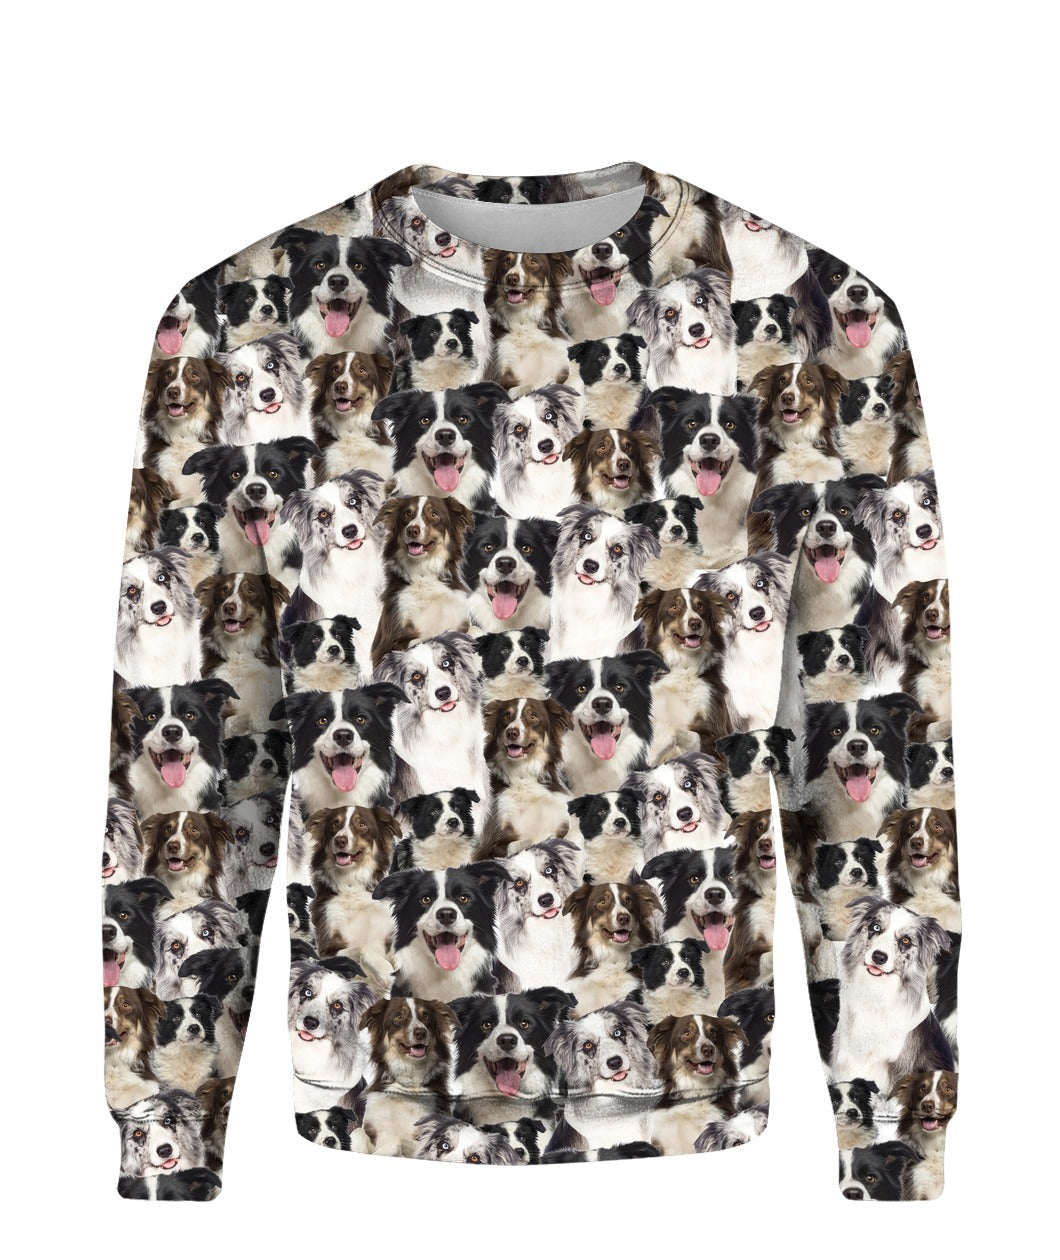 Border Collie - Full Face - Premium Sweatshirt